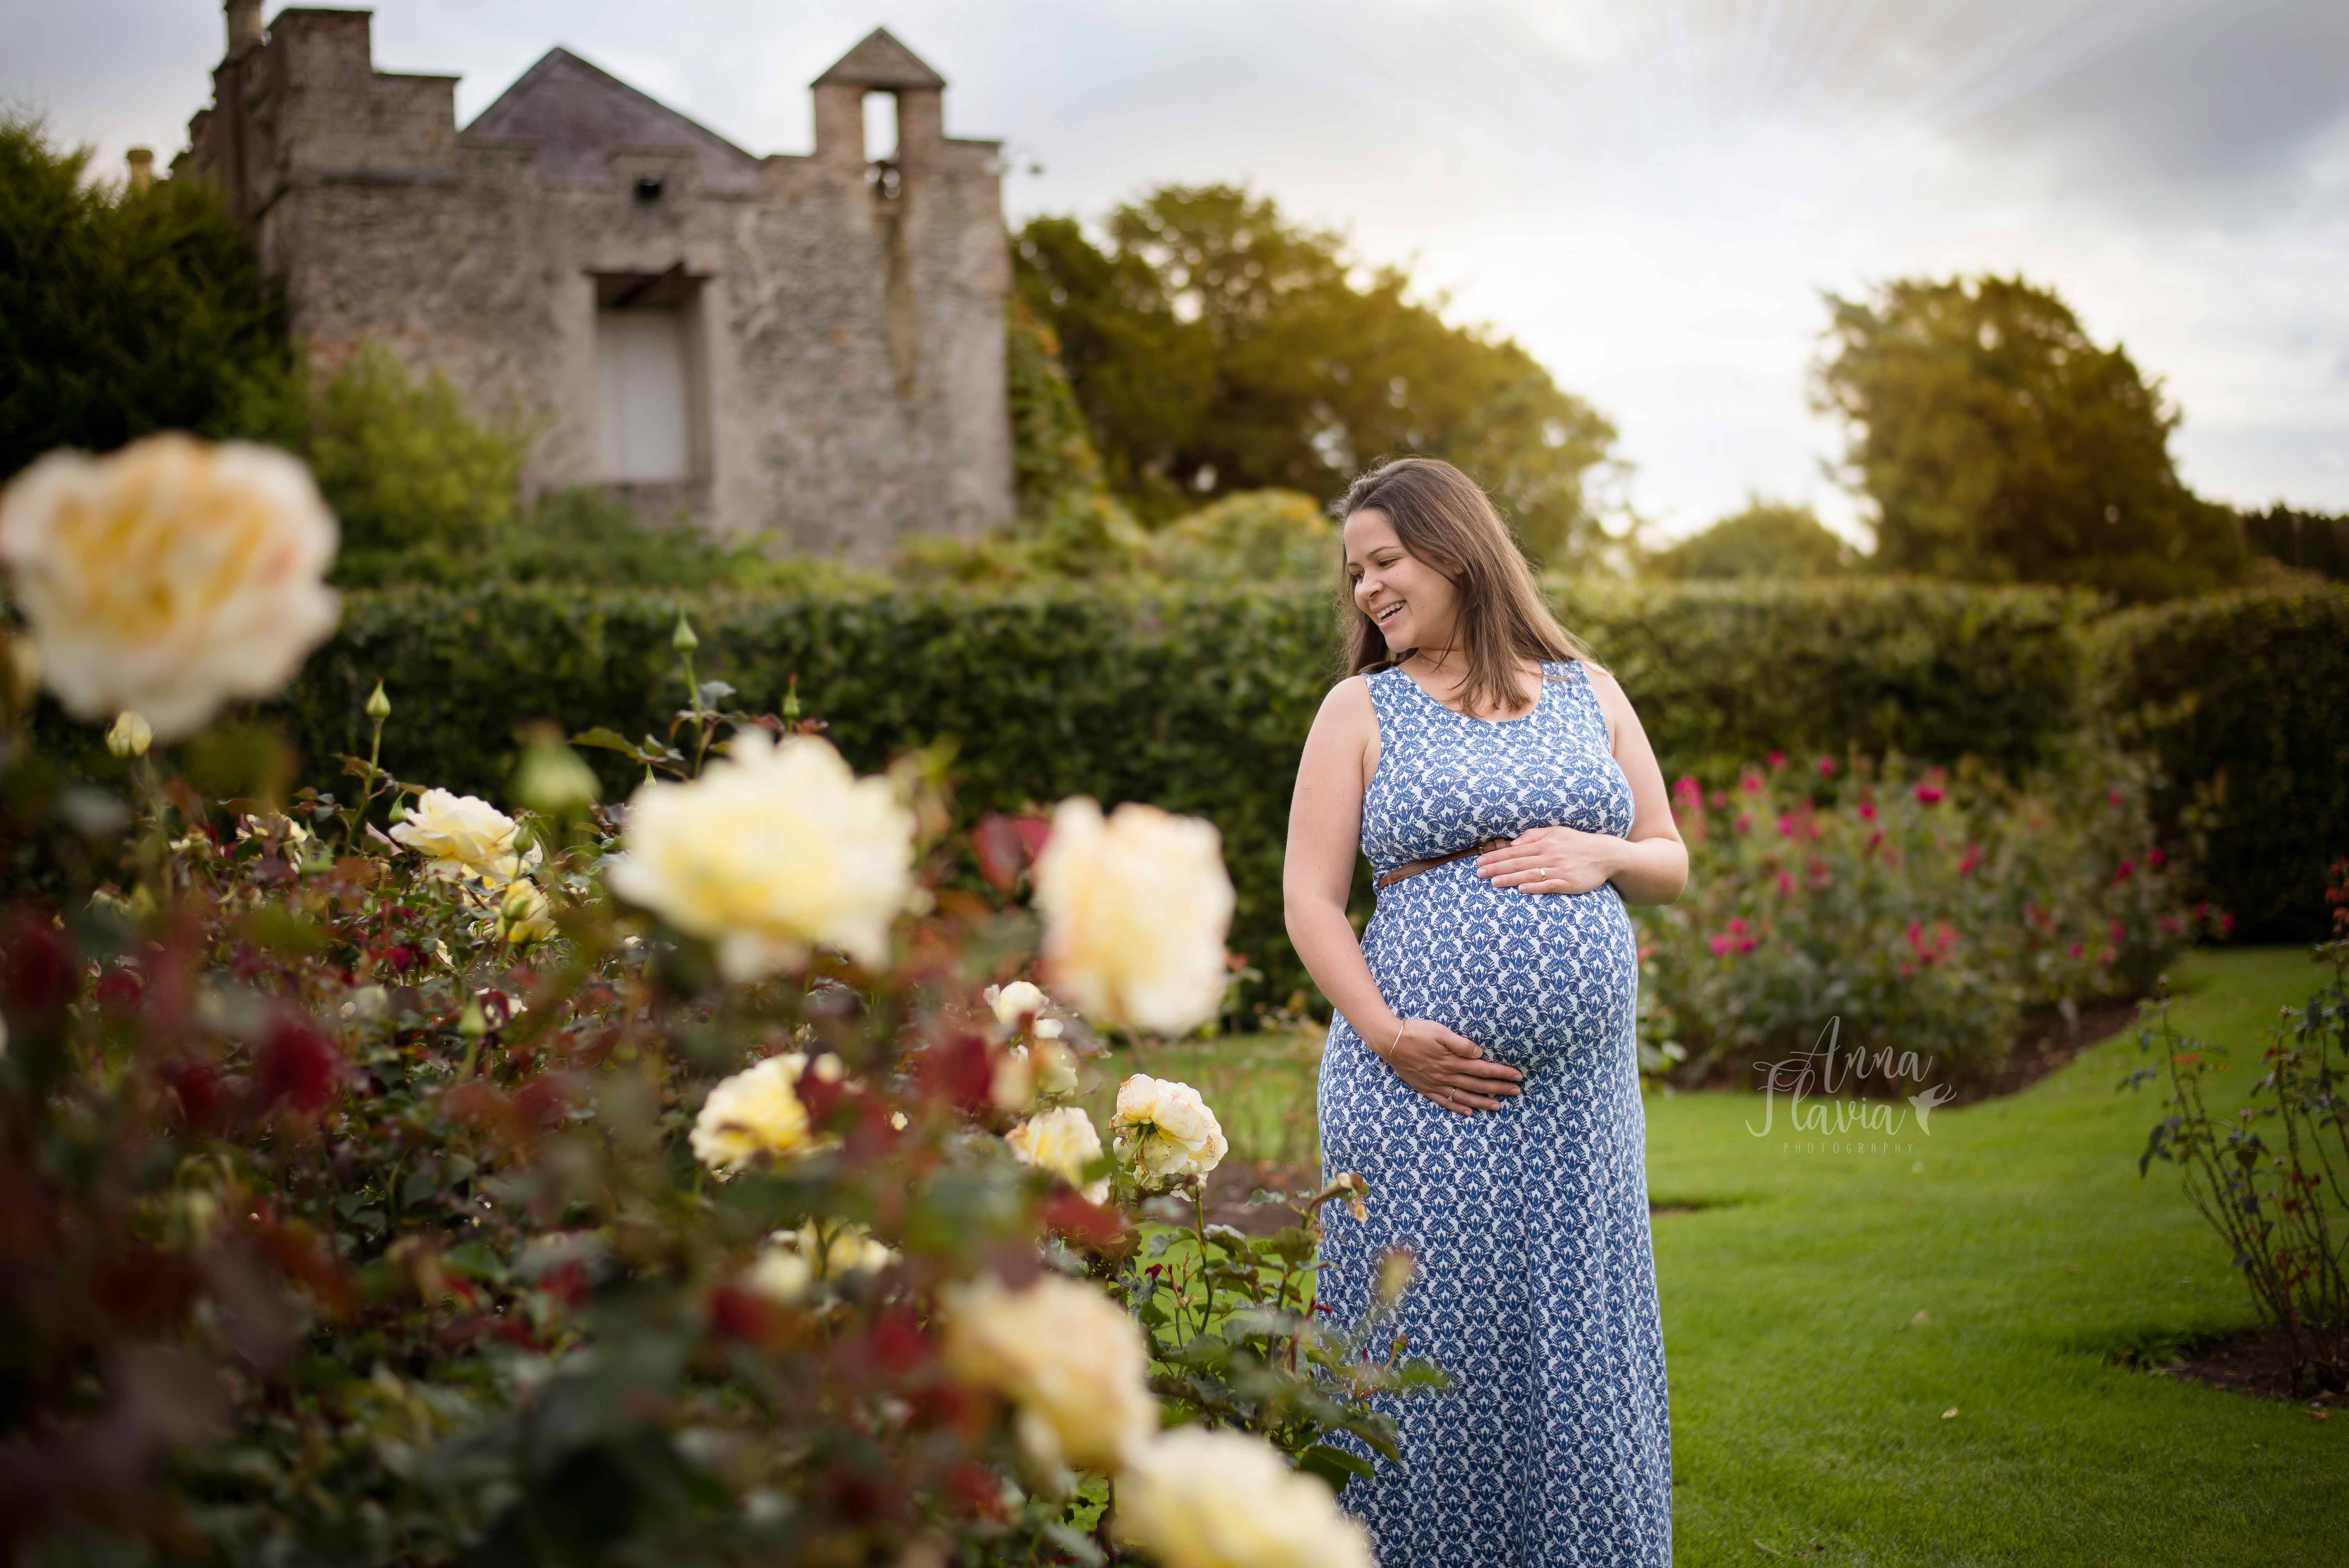 photographer_dublin_anna_flavia_maternity_newborn_family_3